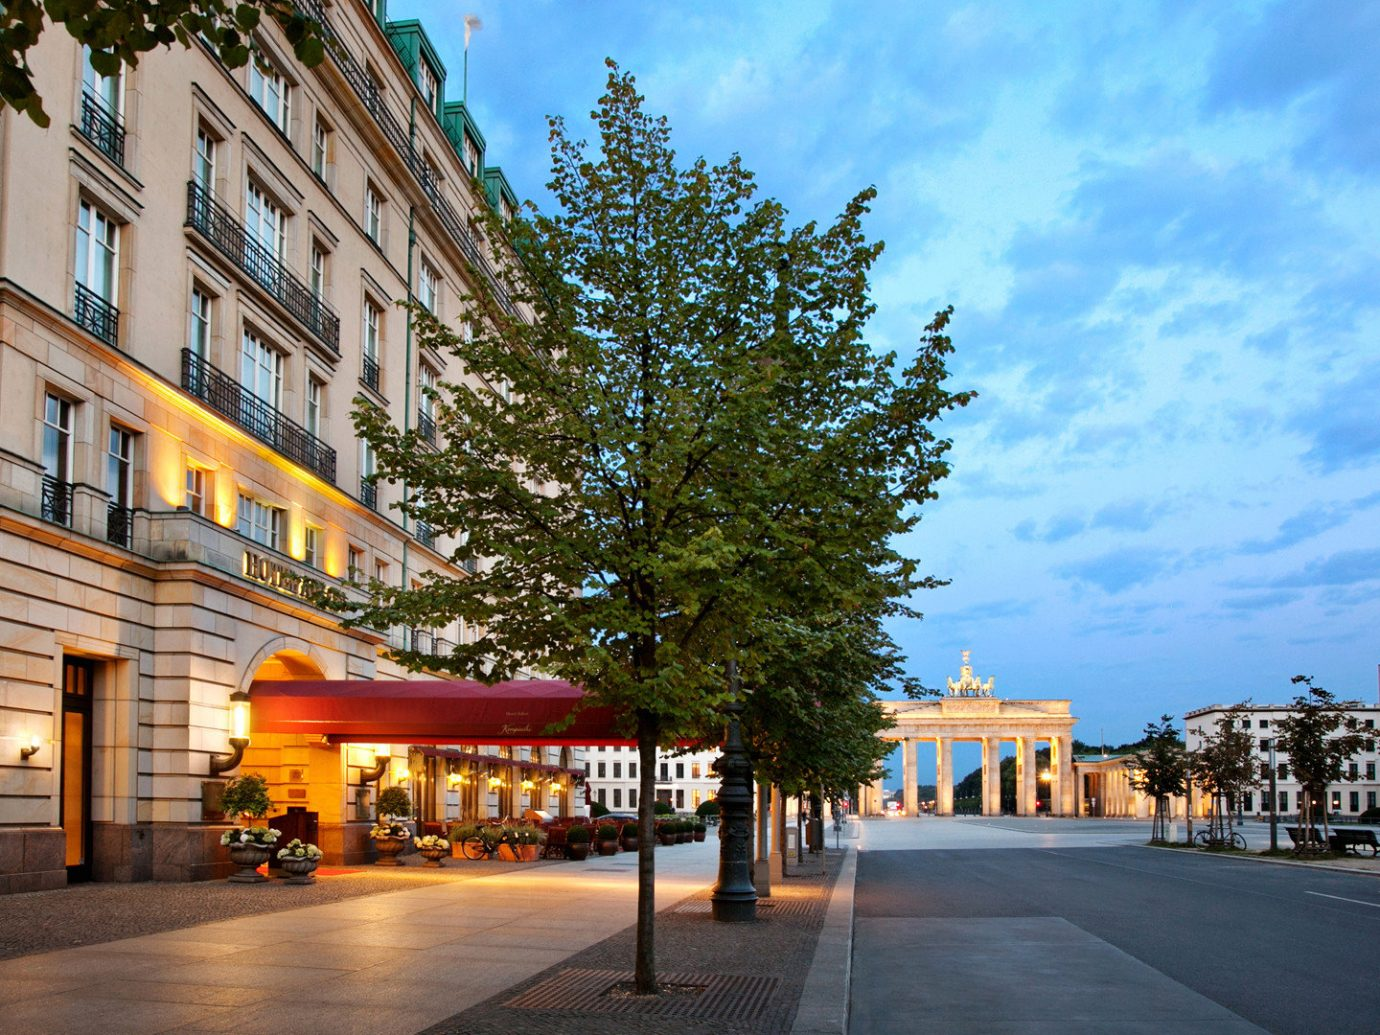 Berlin Boutique Hotels Buildings Exterior Germany Hotels Luxury Travel building sky outdoor road scene Town way neighbourhood City urban area street residential area human settlement Downtown Architecture cityscape plaza evening infrastructure sidewalk facade town square